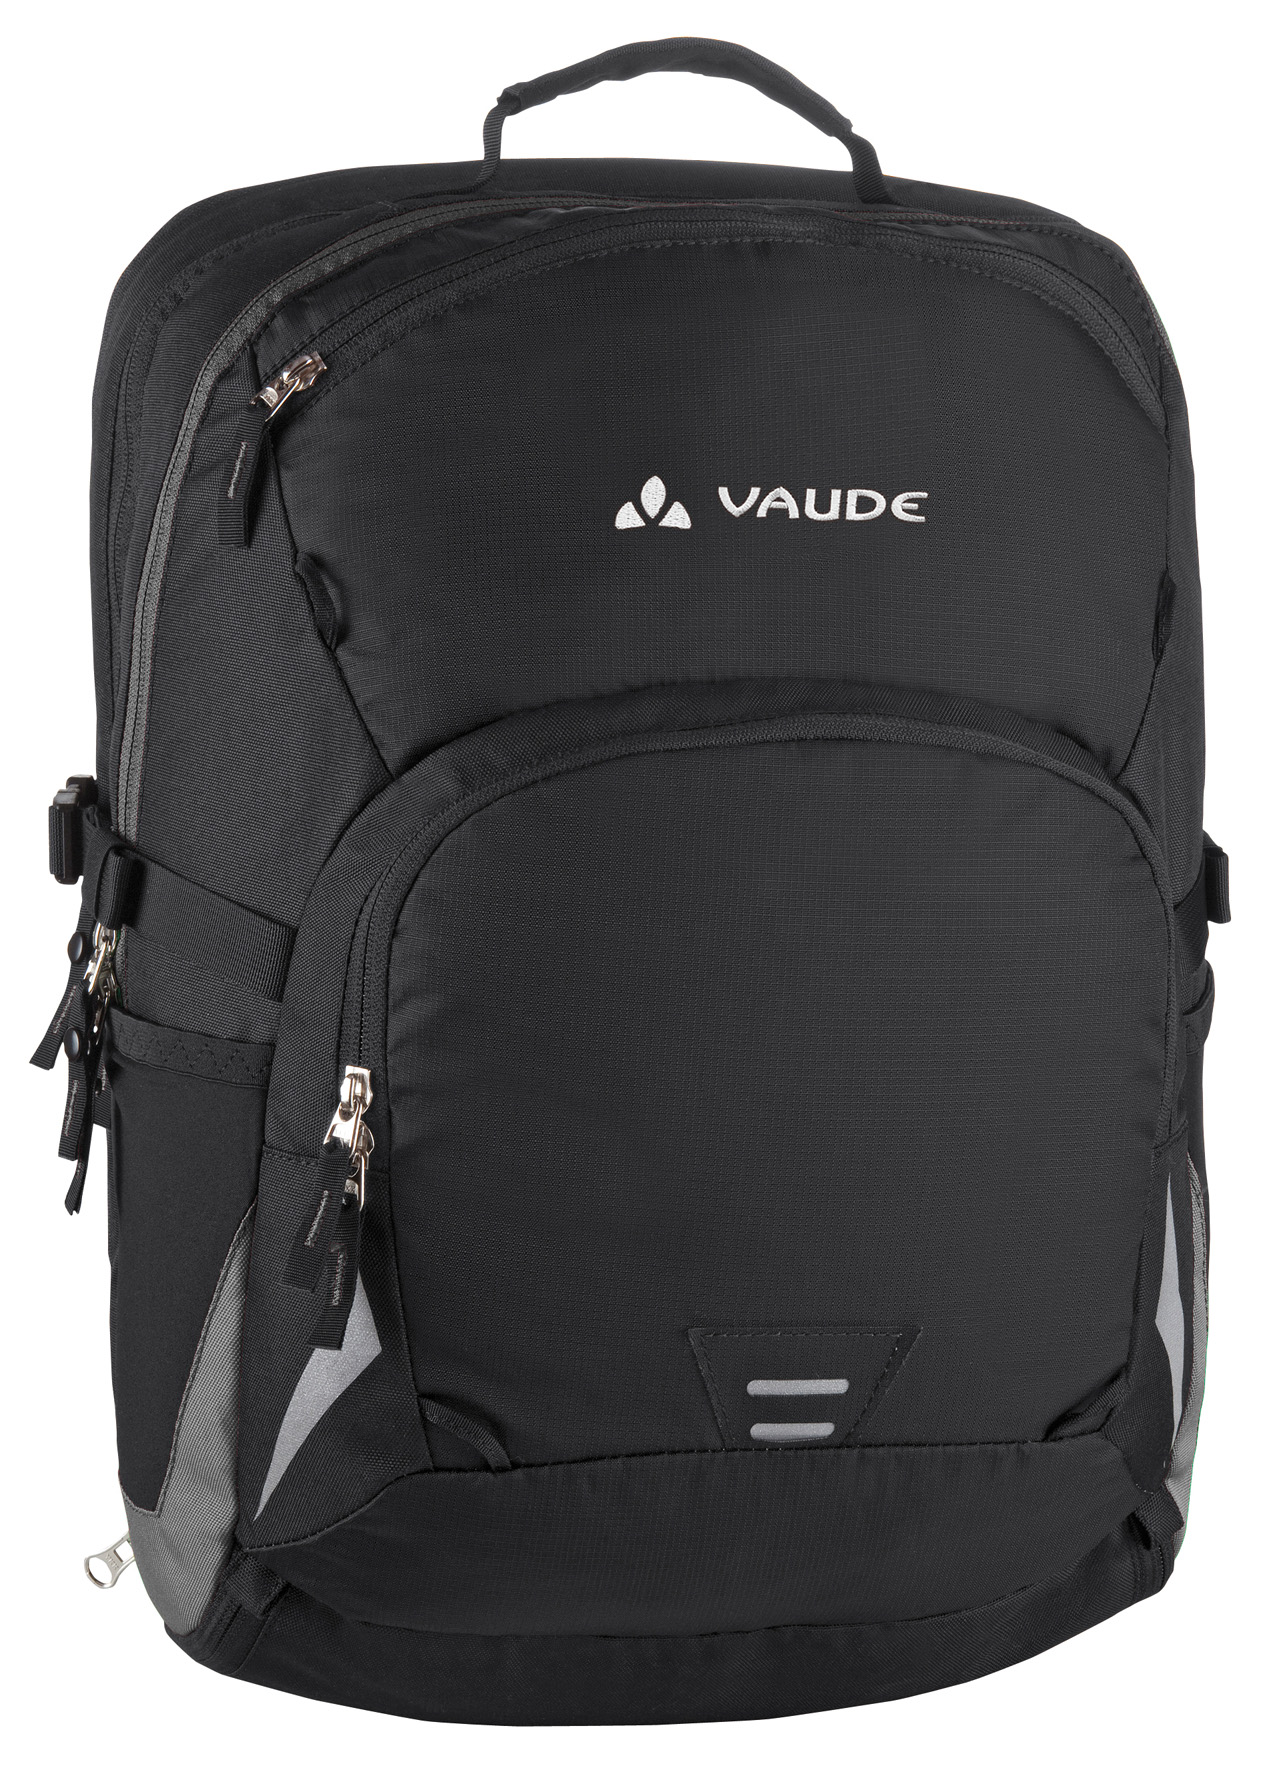 VAUDE Cycle 22 black/anthracite  - schneider-sports